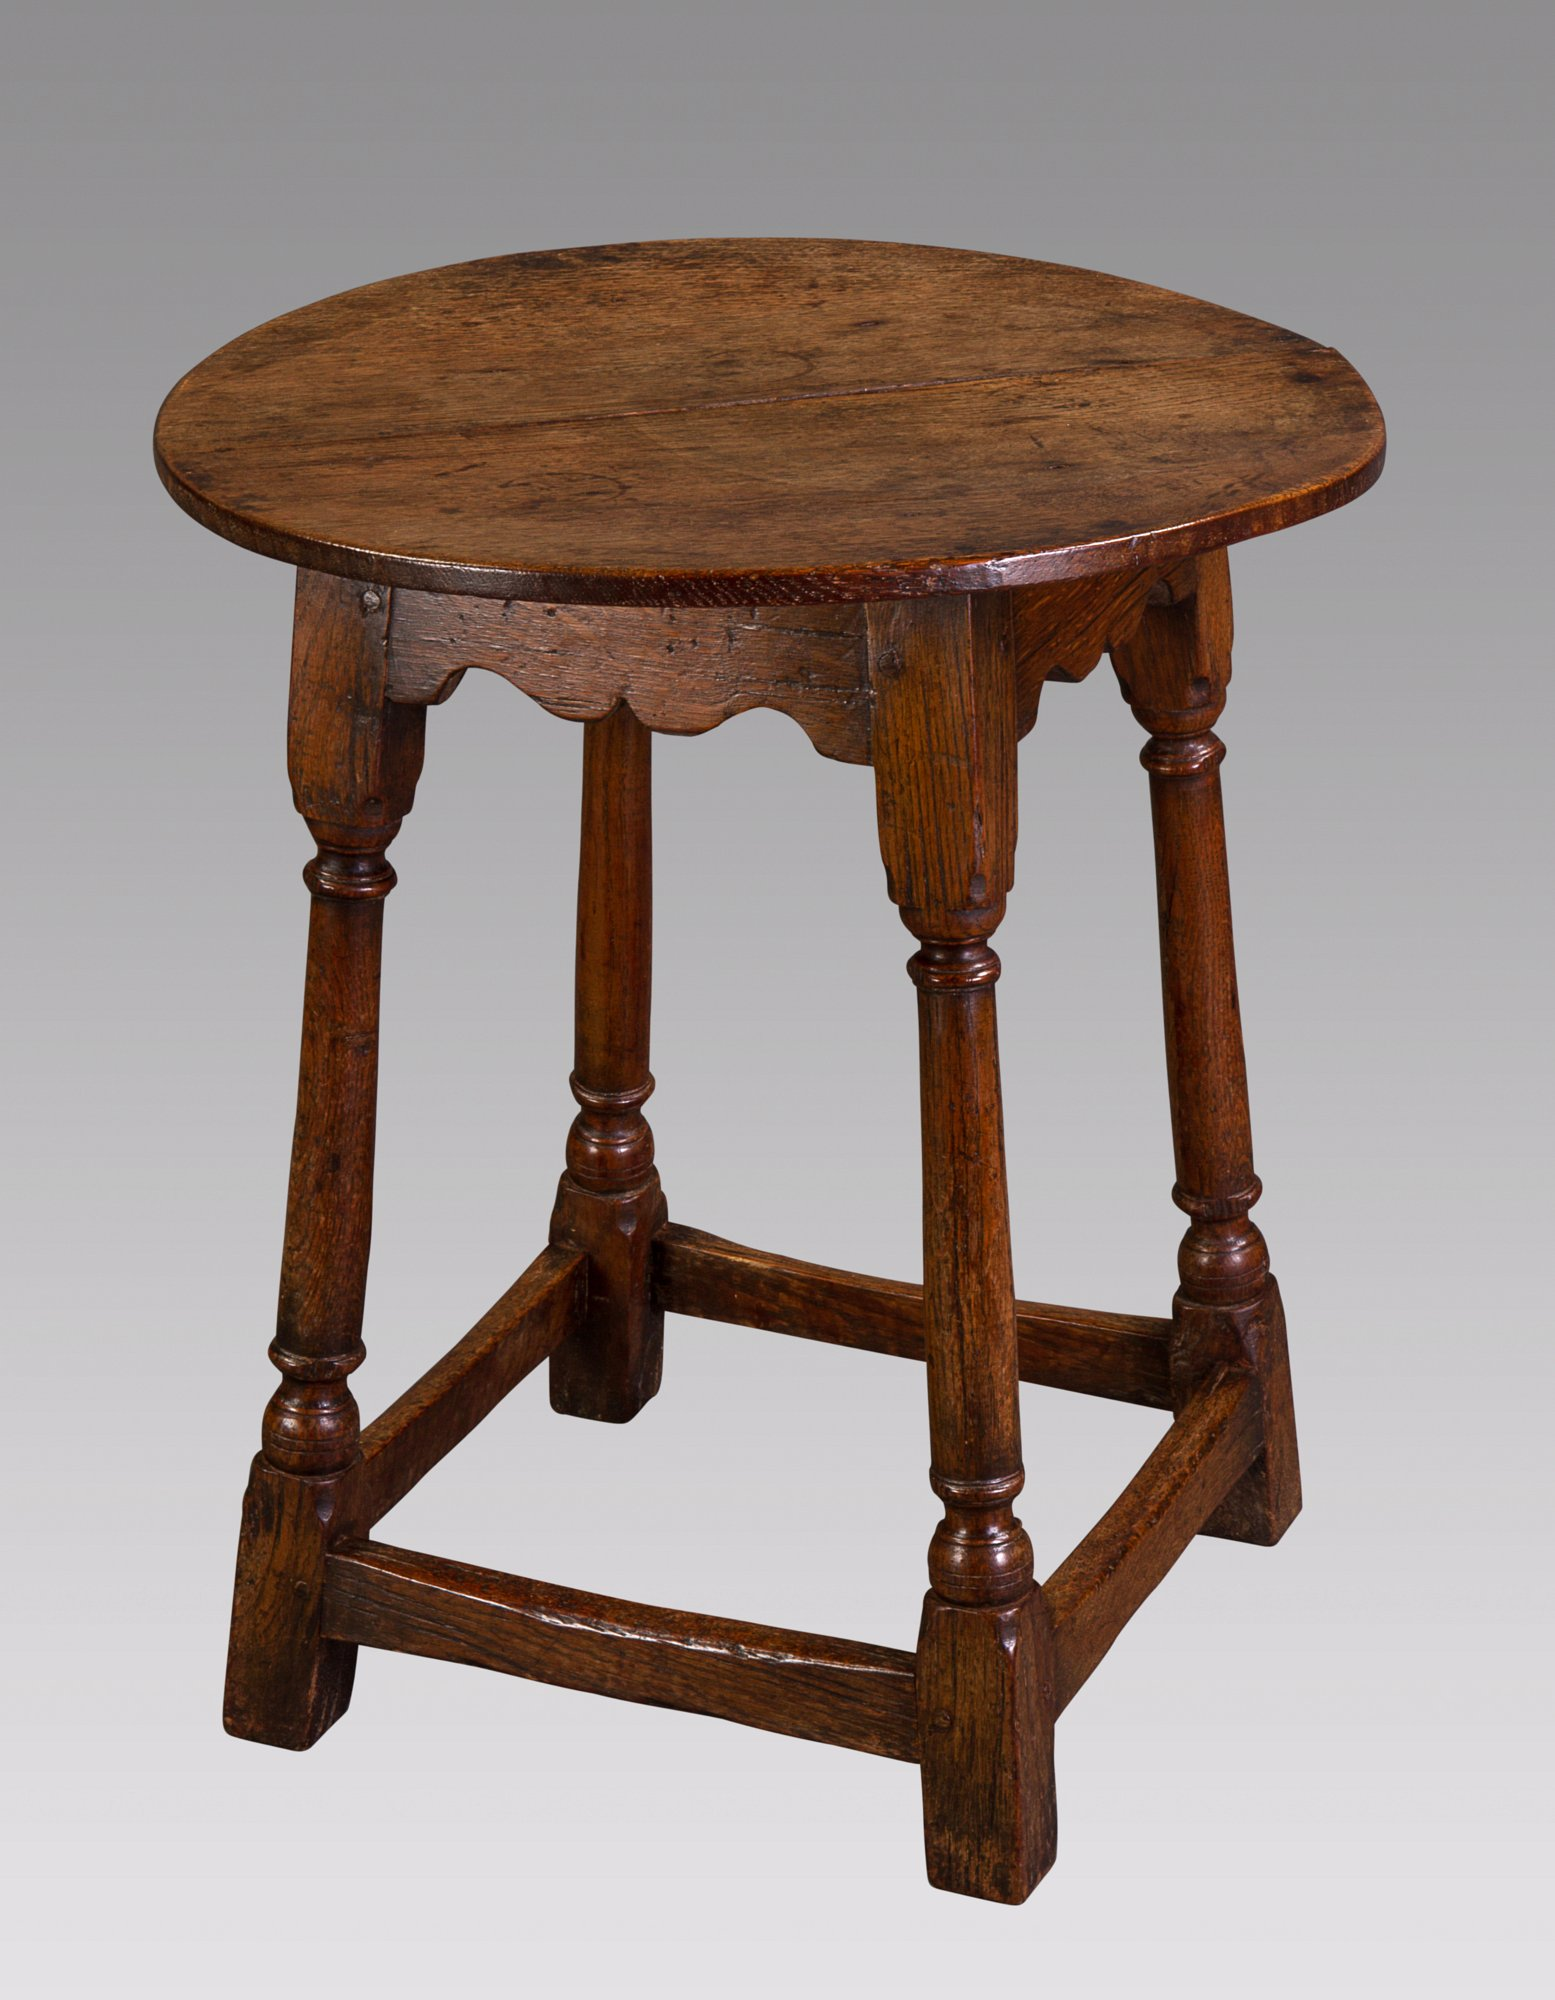 A Mid 18th Century Small Oak Tavern Table ...